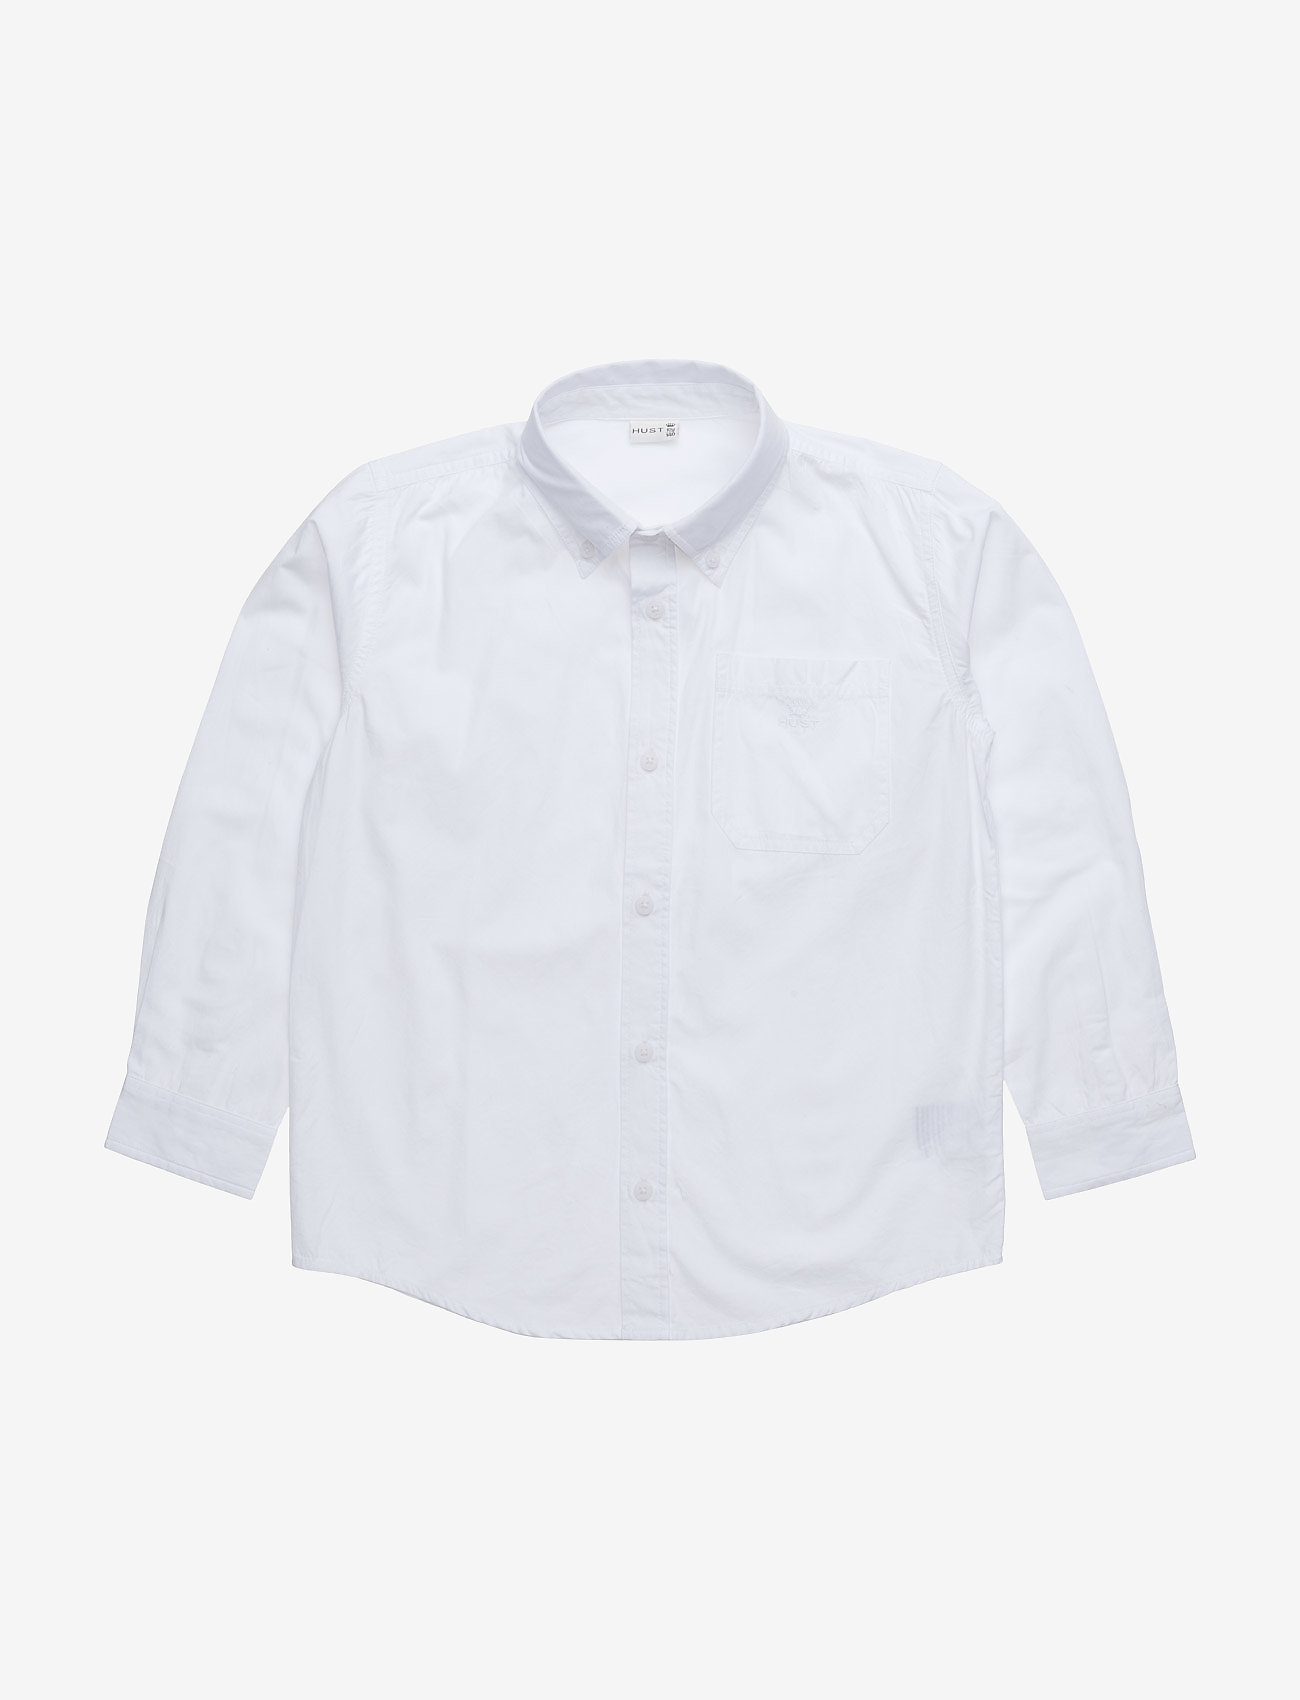 Hust & Claire - Ross - Shirt - shirts - white - 0